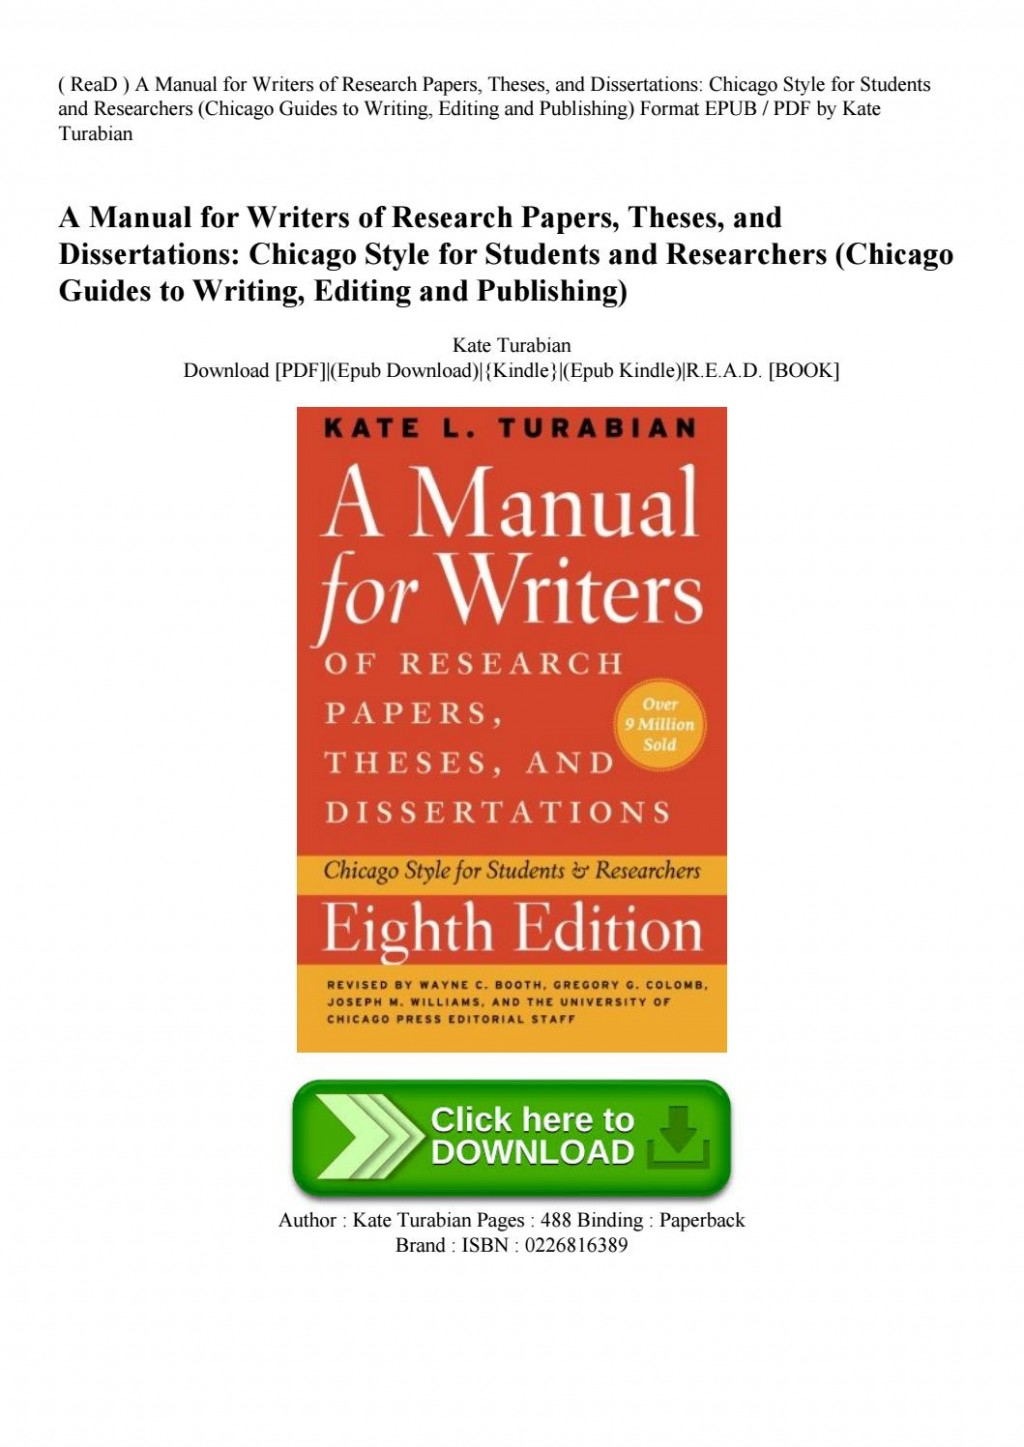 010 Research Paper Manual For Writers Of Papers Theses And Dissertations Page 1 Sensational A Ed. 8 8th Edition Ninth Pdf Large